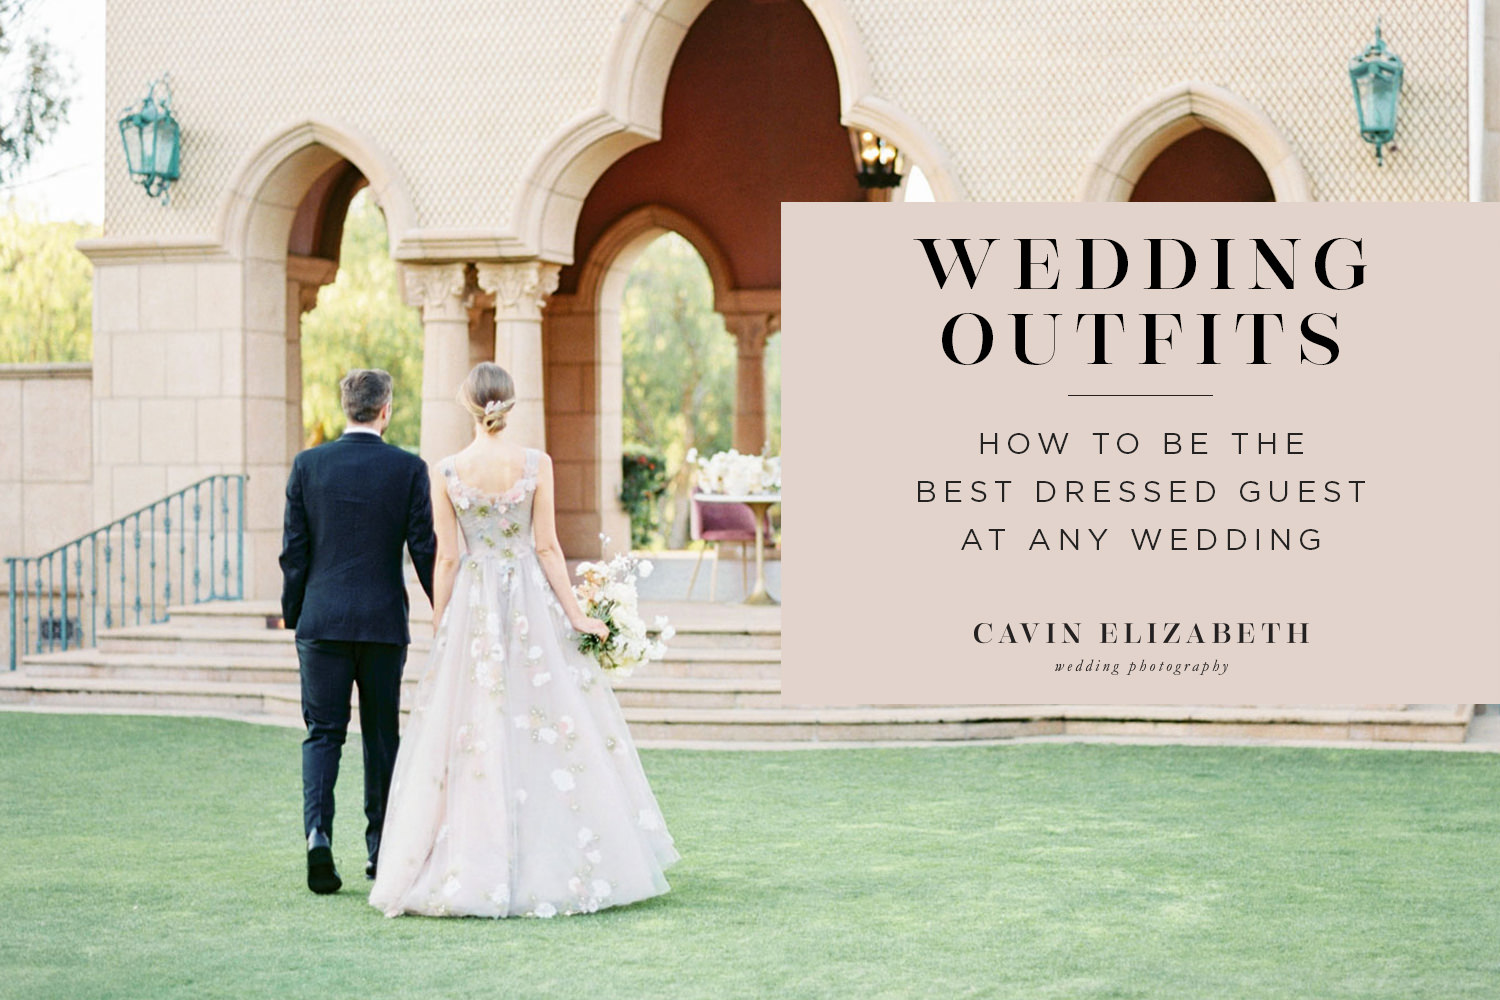 How to Be the Best Dressed Guest at This Year's Weddings